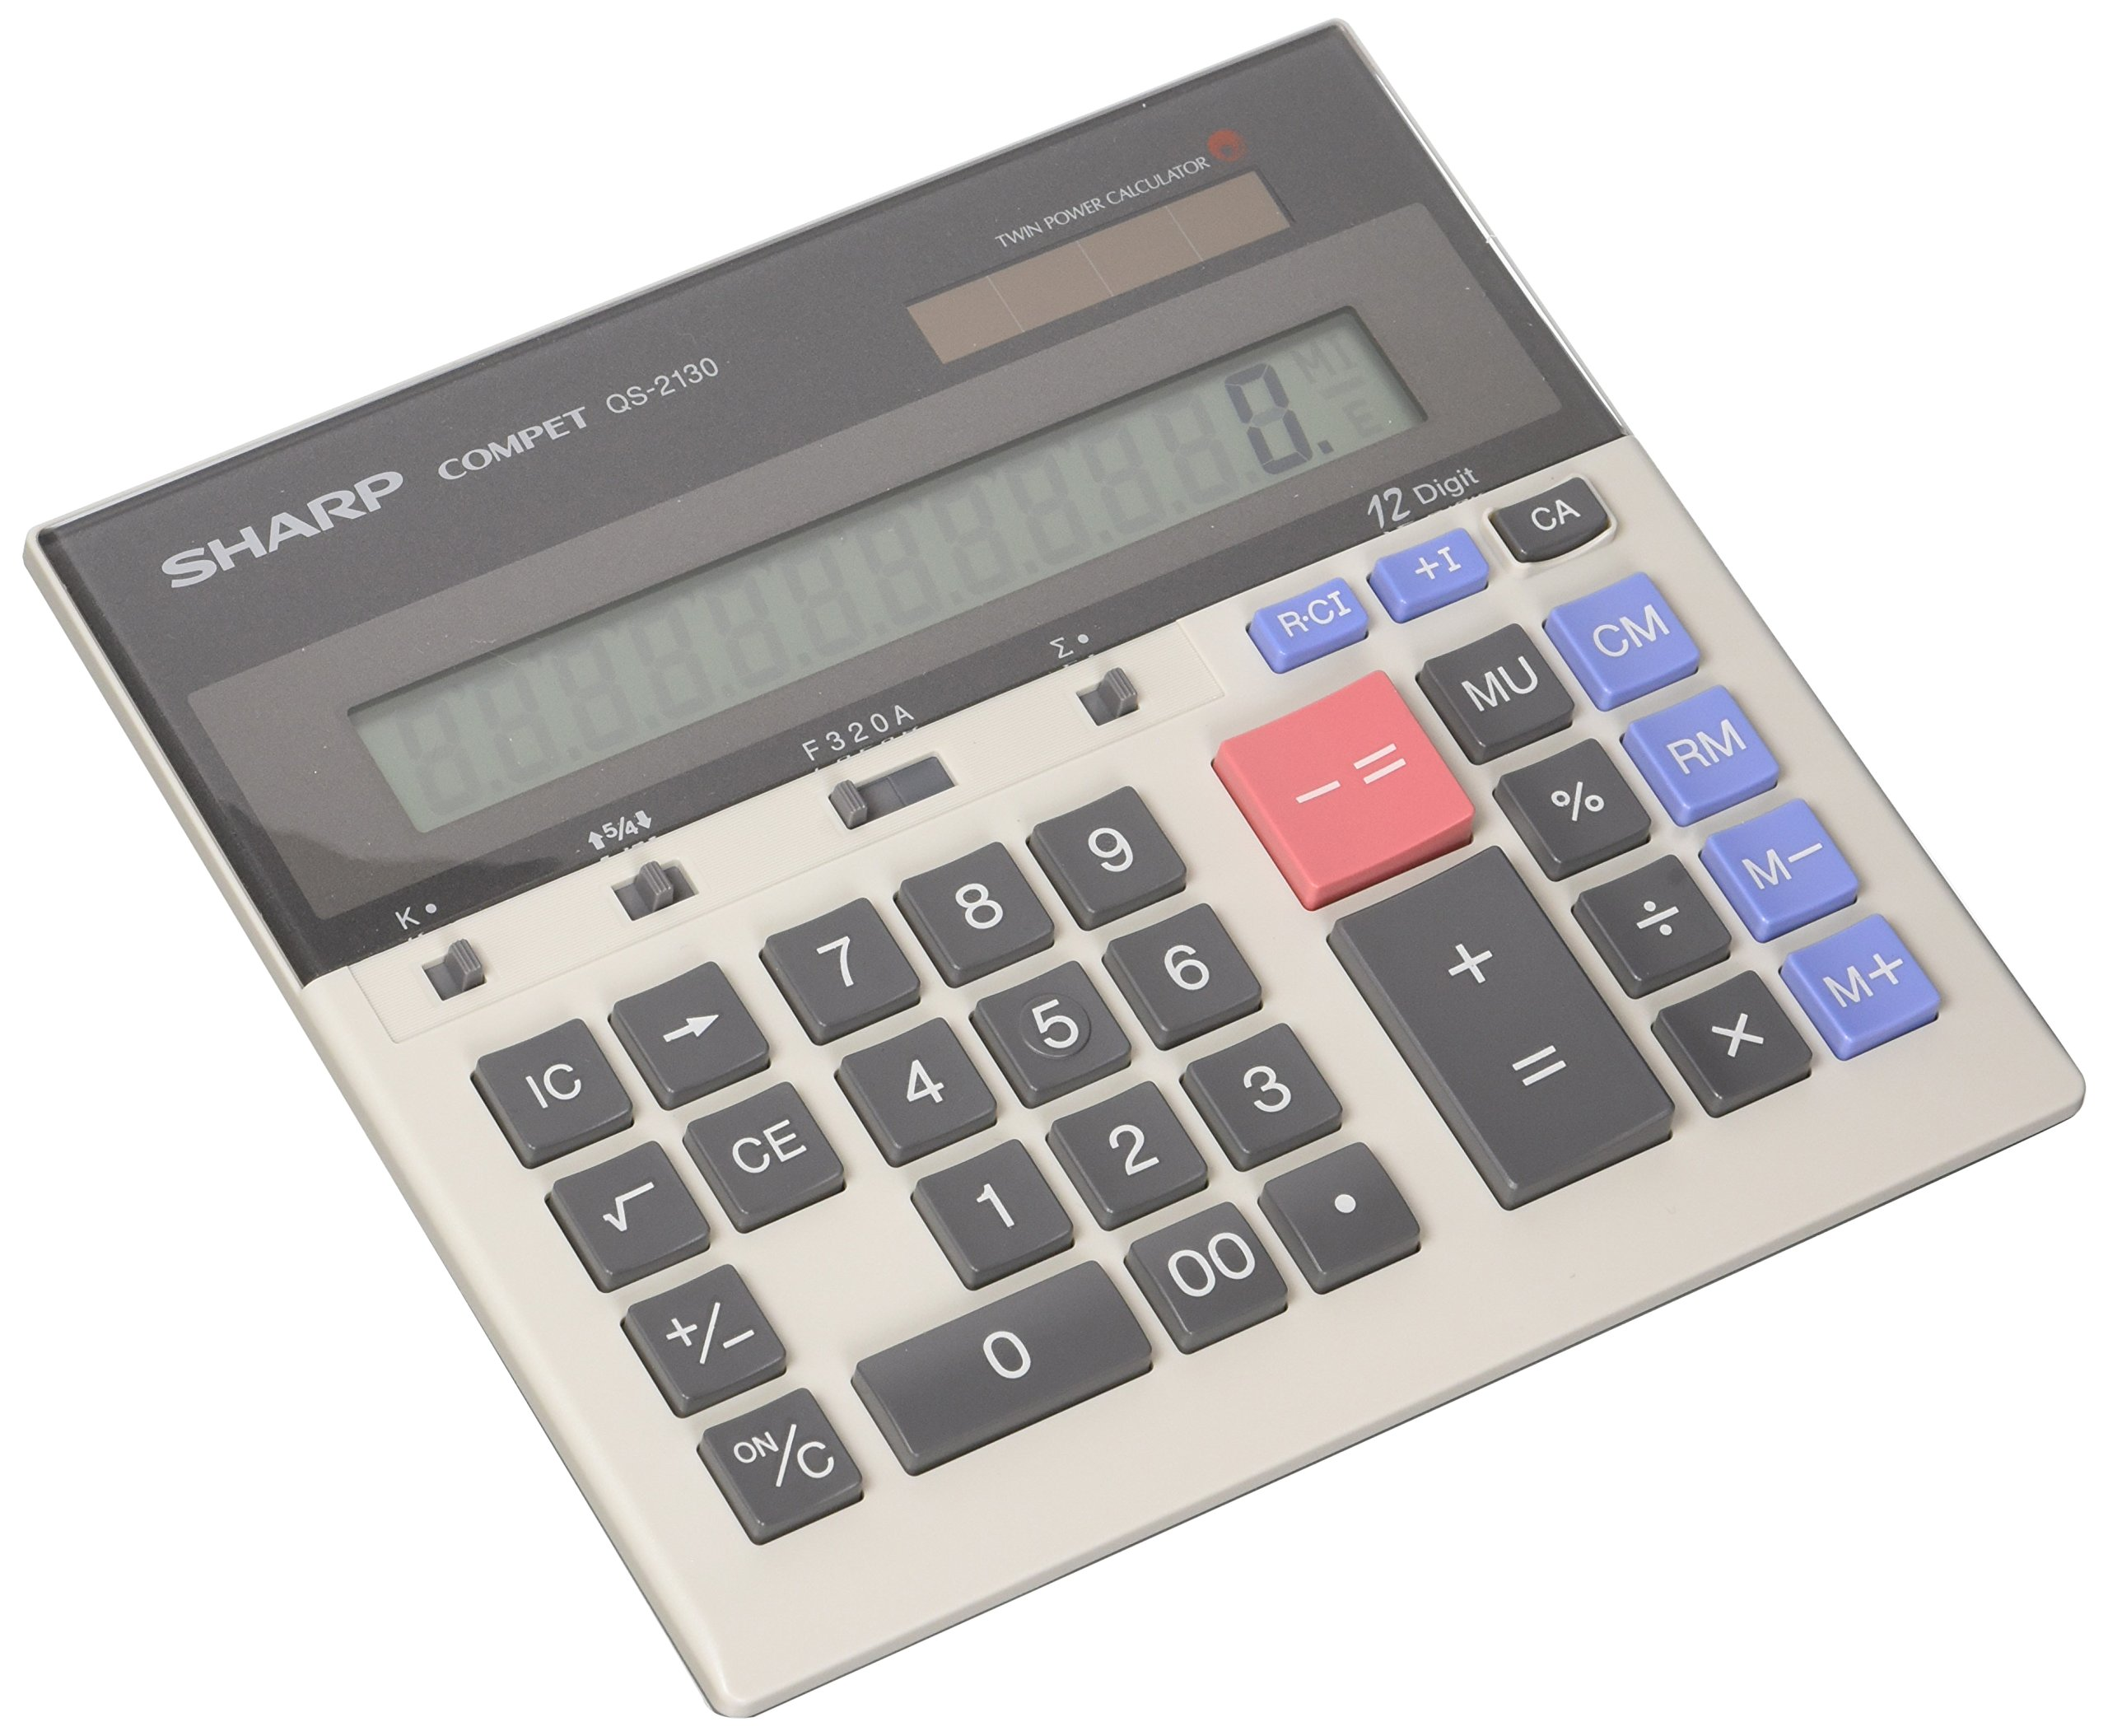 Sharp QS-2130 12 Digit Commercial Desktop Calculator with Kickstand, Arithmetic logic by Sharp